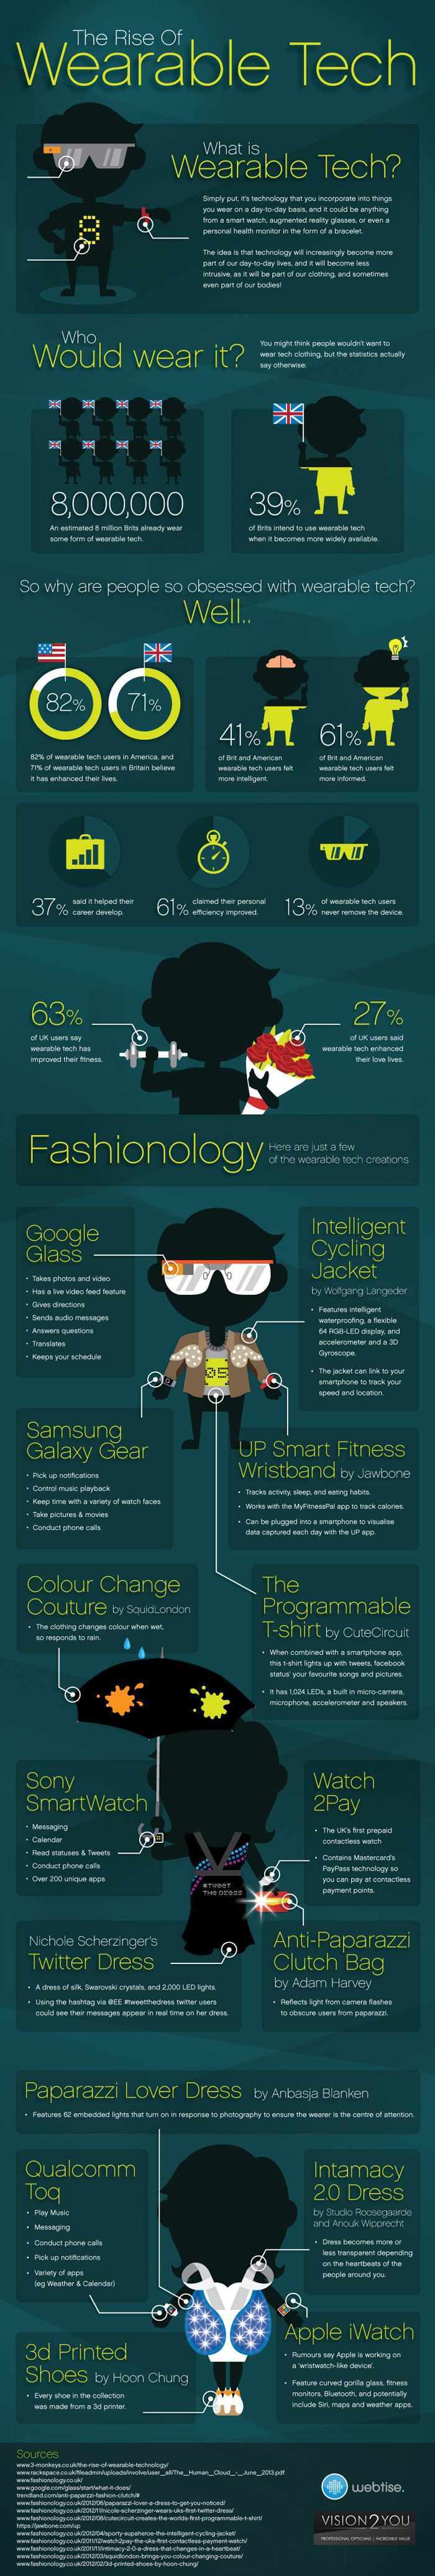 Infographic about the rise of wearable technology #wearabletech #tech #technology